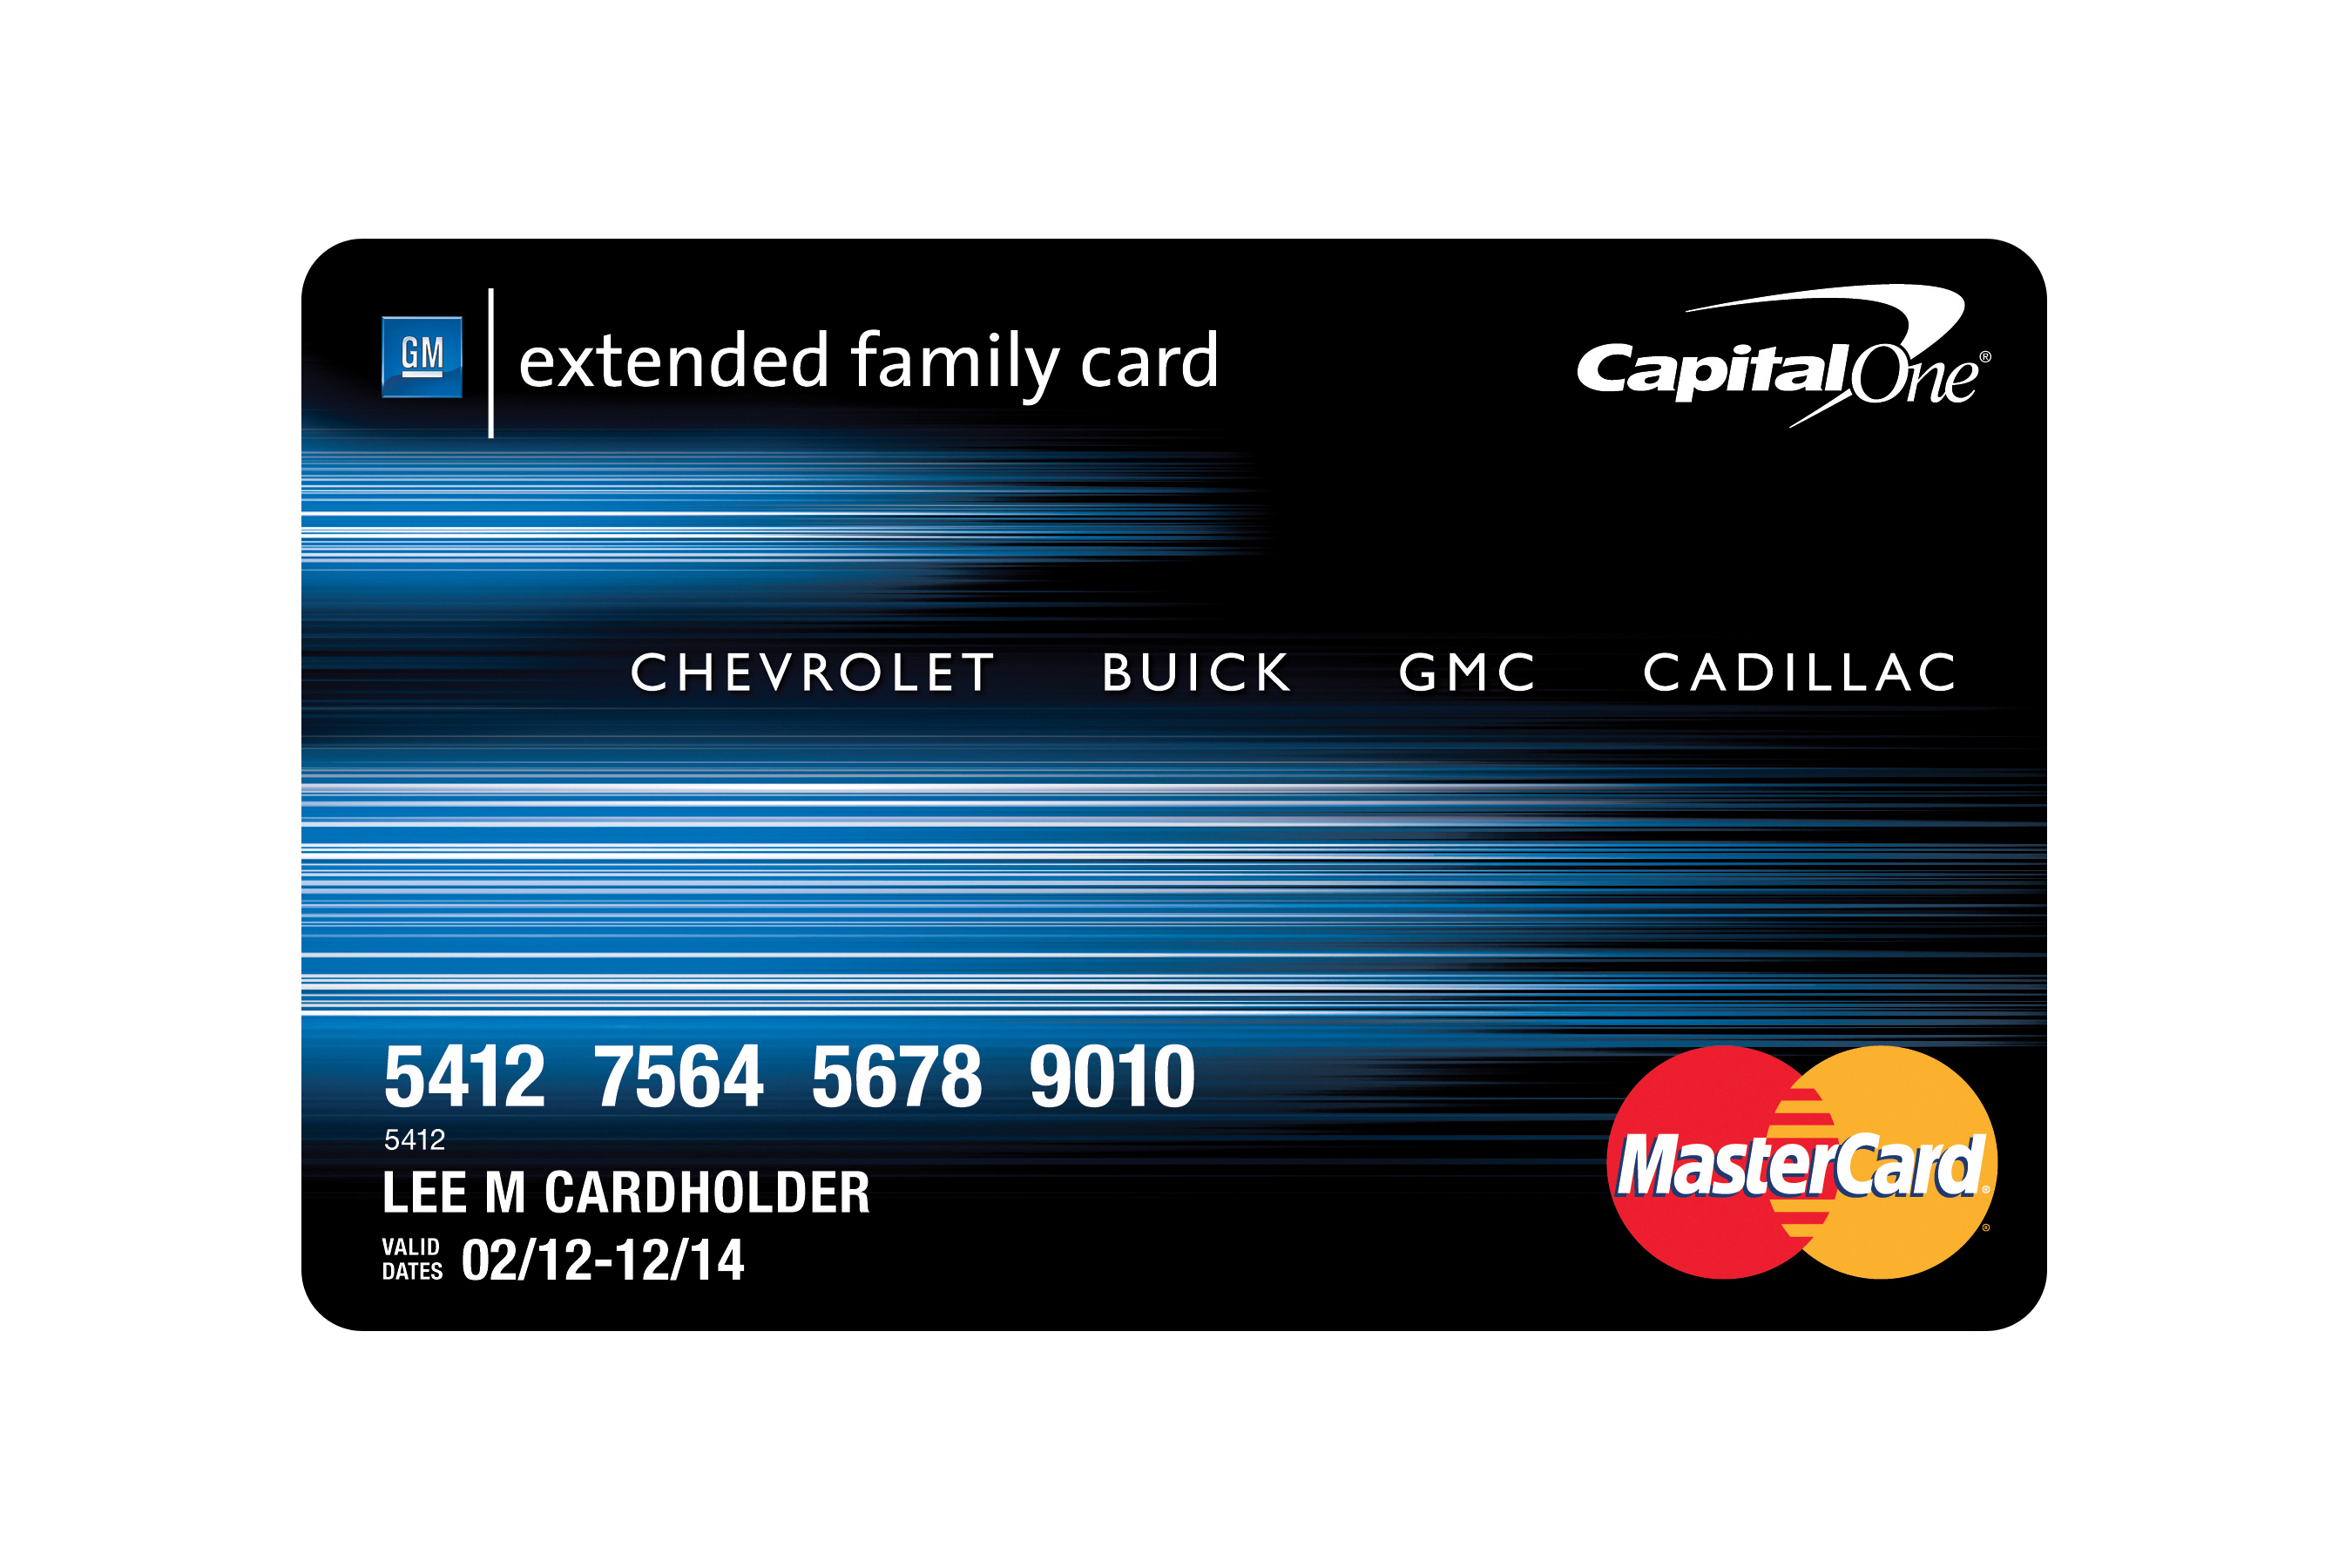 Gm Extended Family Card >> Capital One And General Motors Introduce New Automotive Rewards Card